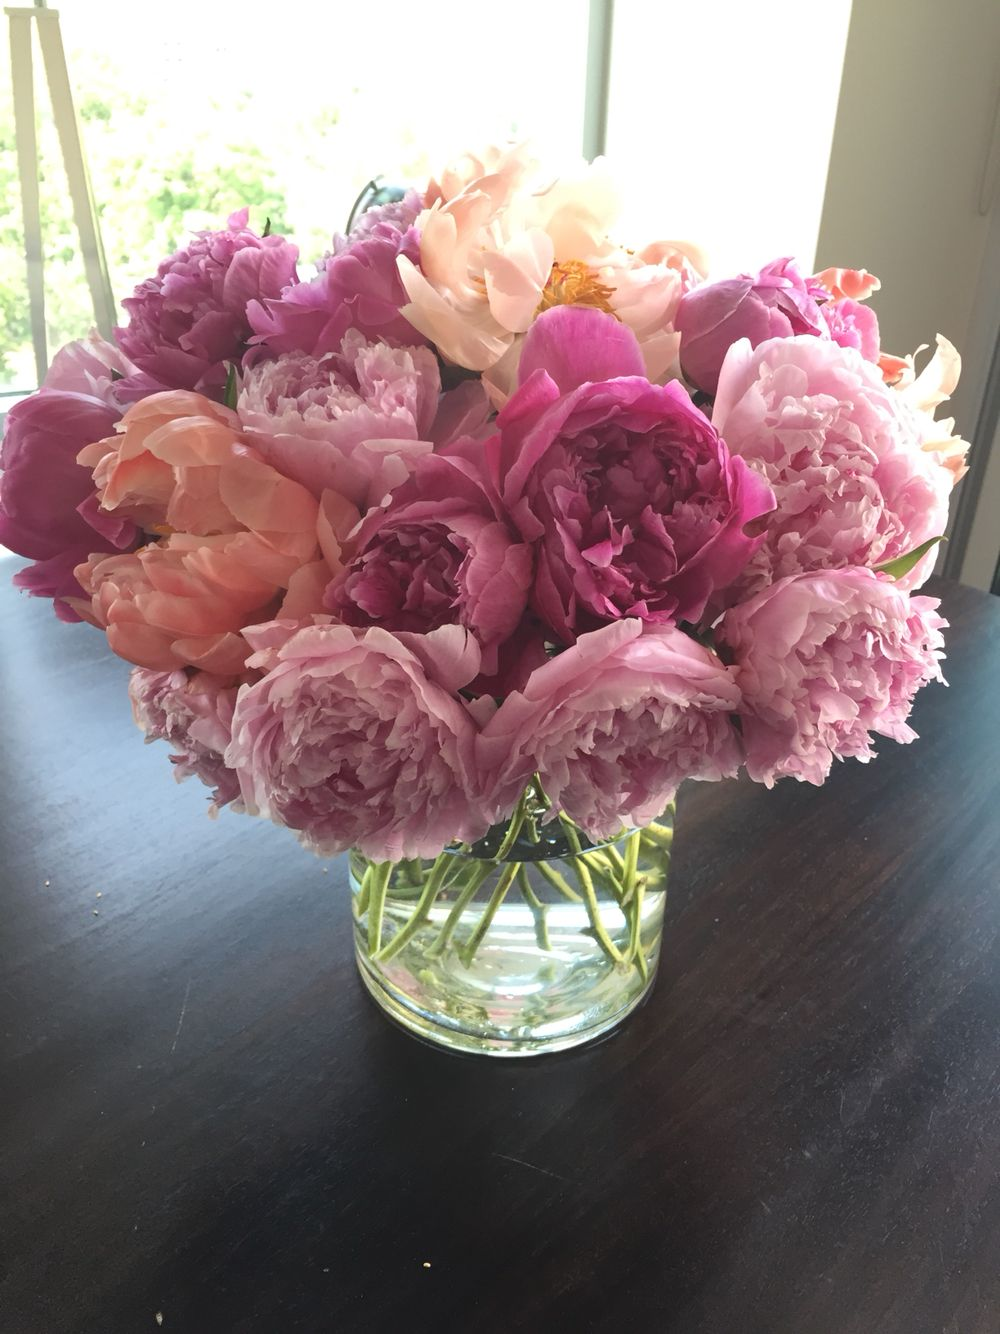 Some pretty #pink #peonies brightening up my Saturday